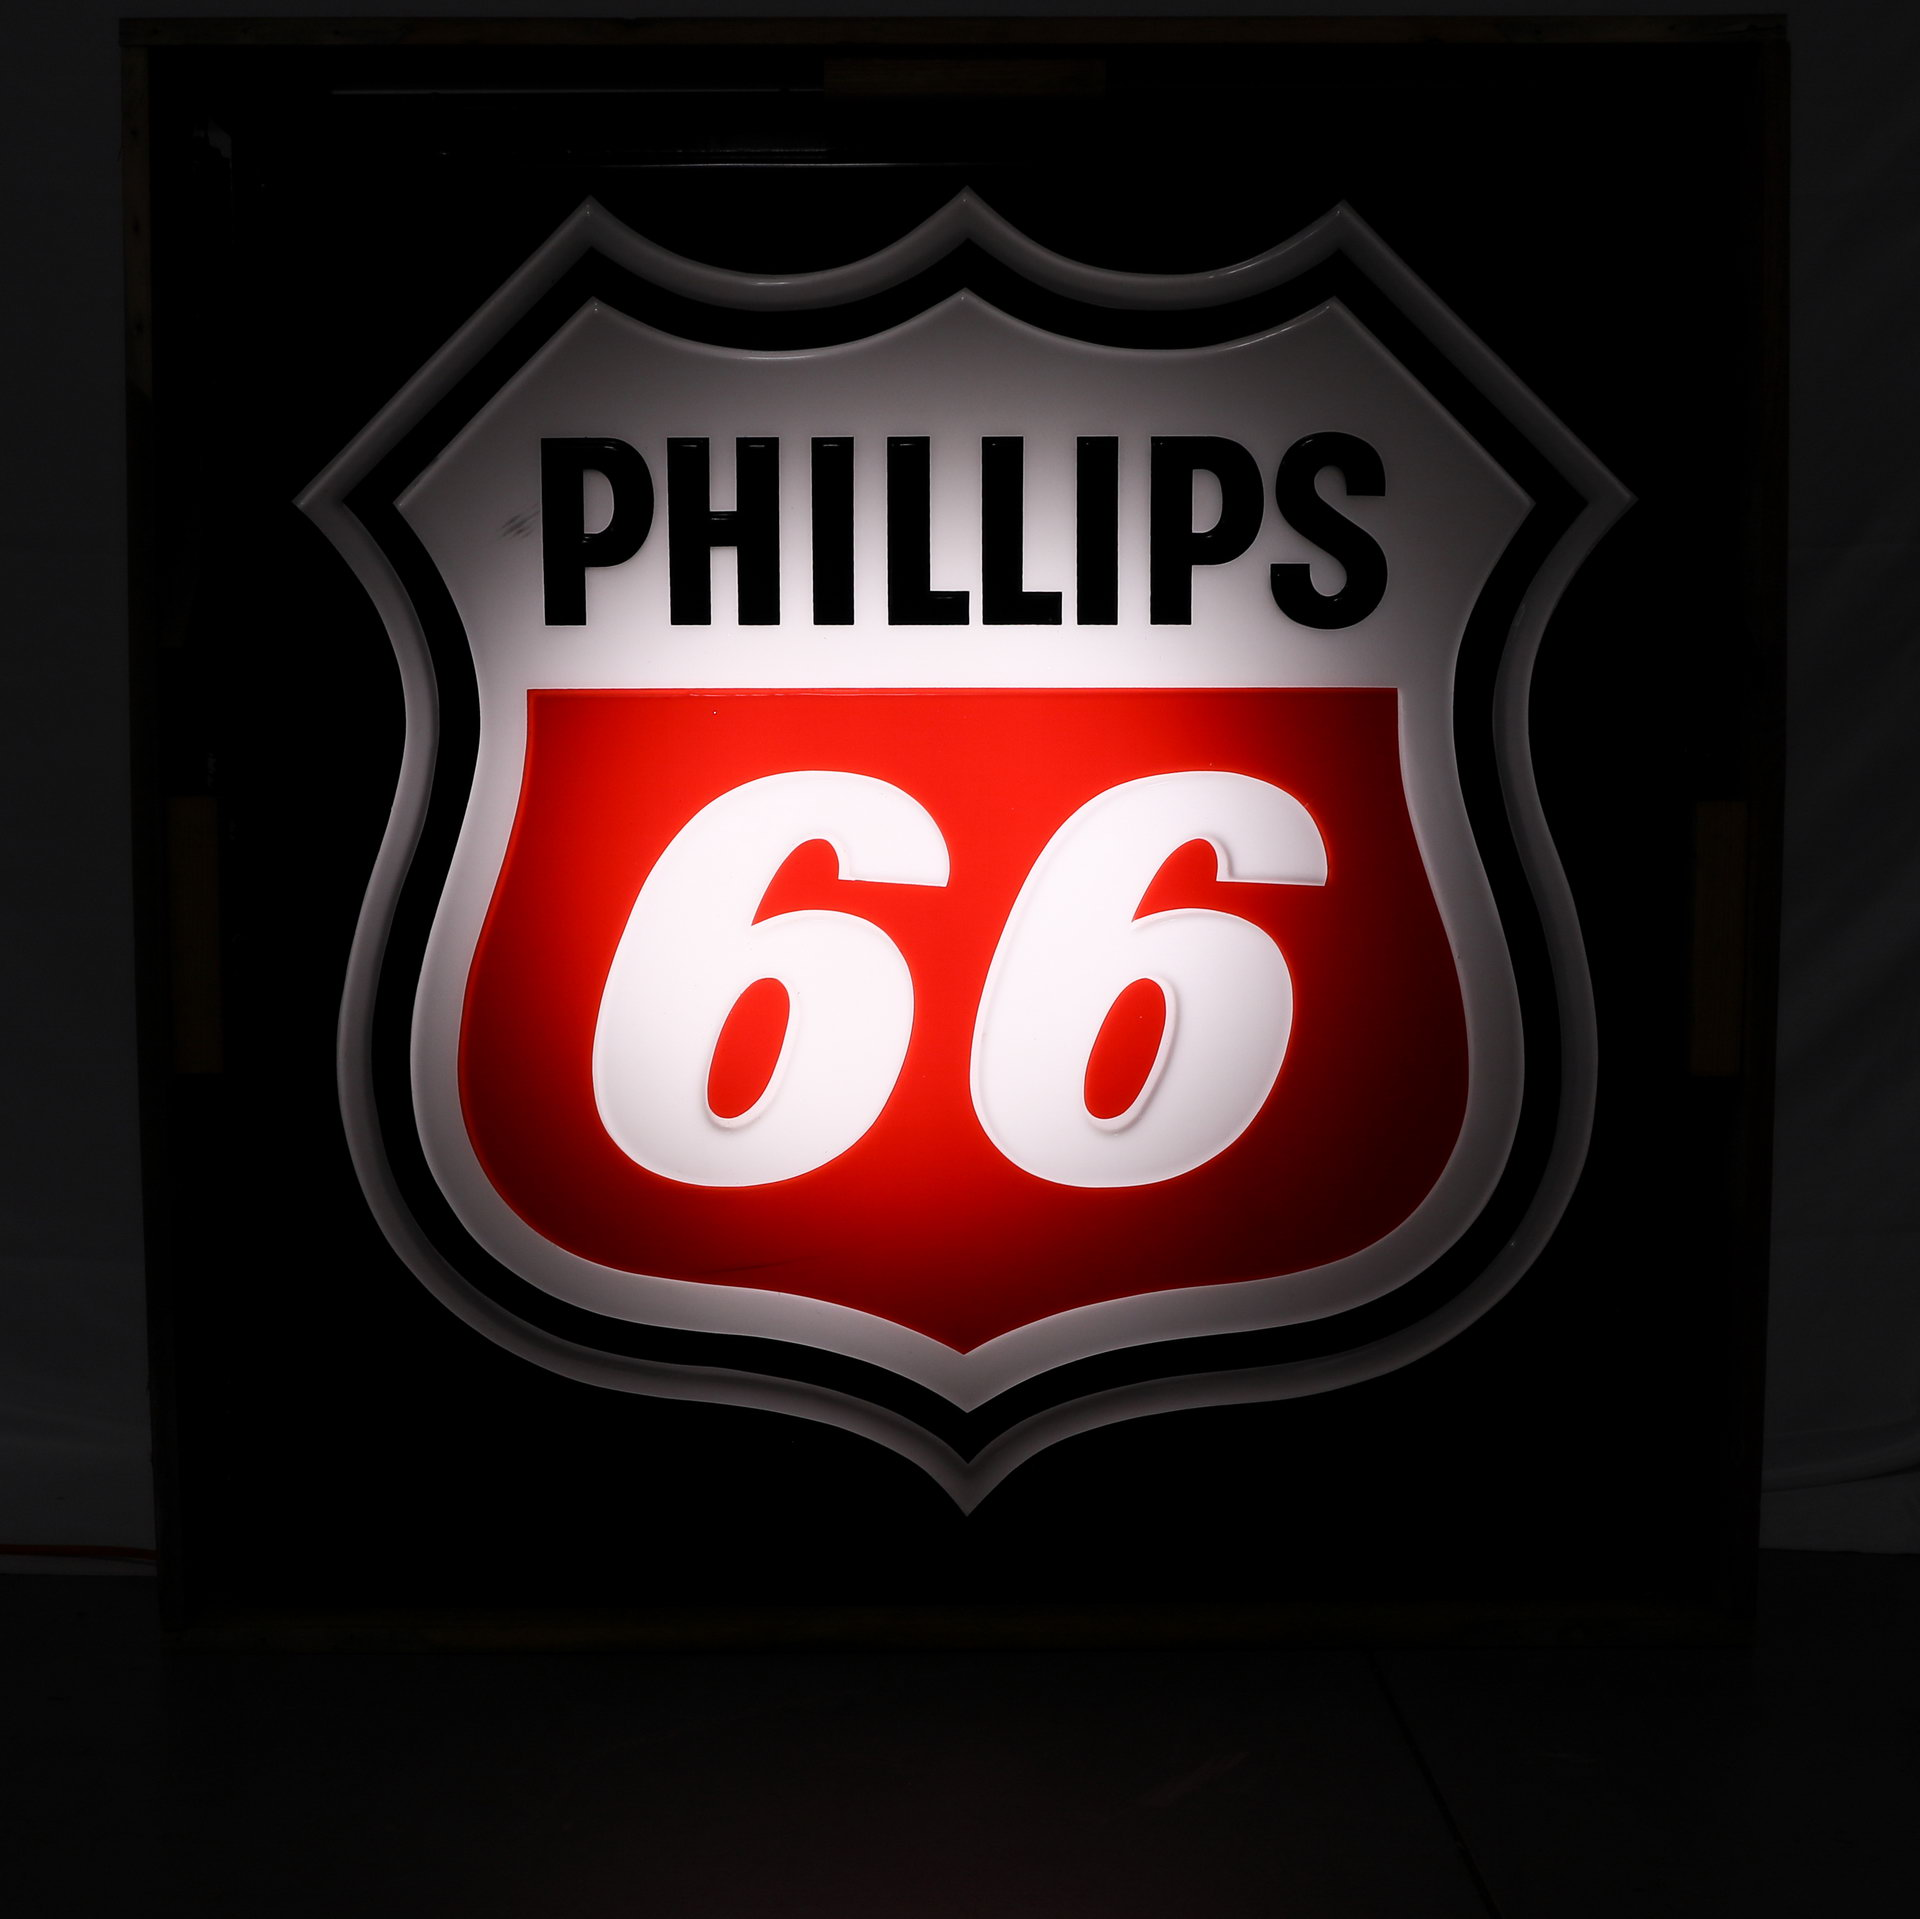 Phillips 66 Plastic Lighted Gas Station Can Sign